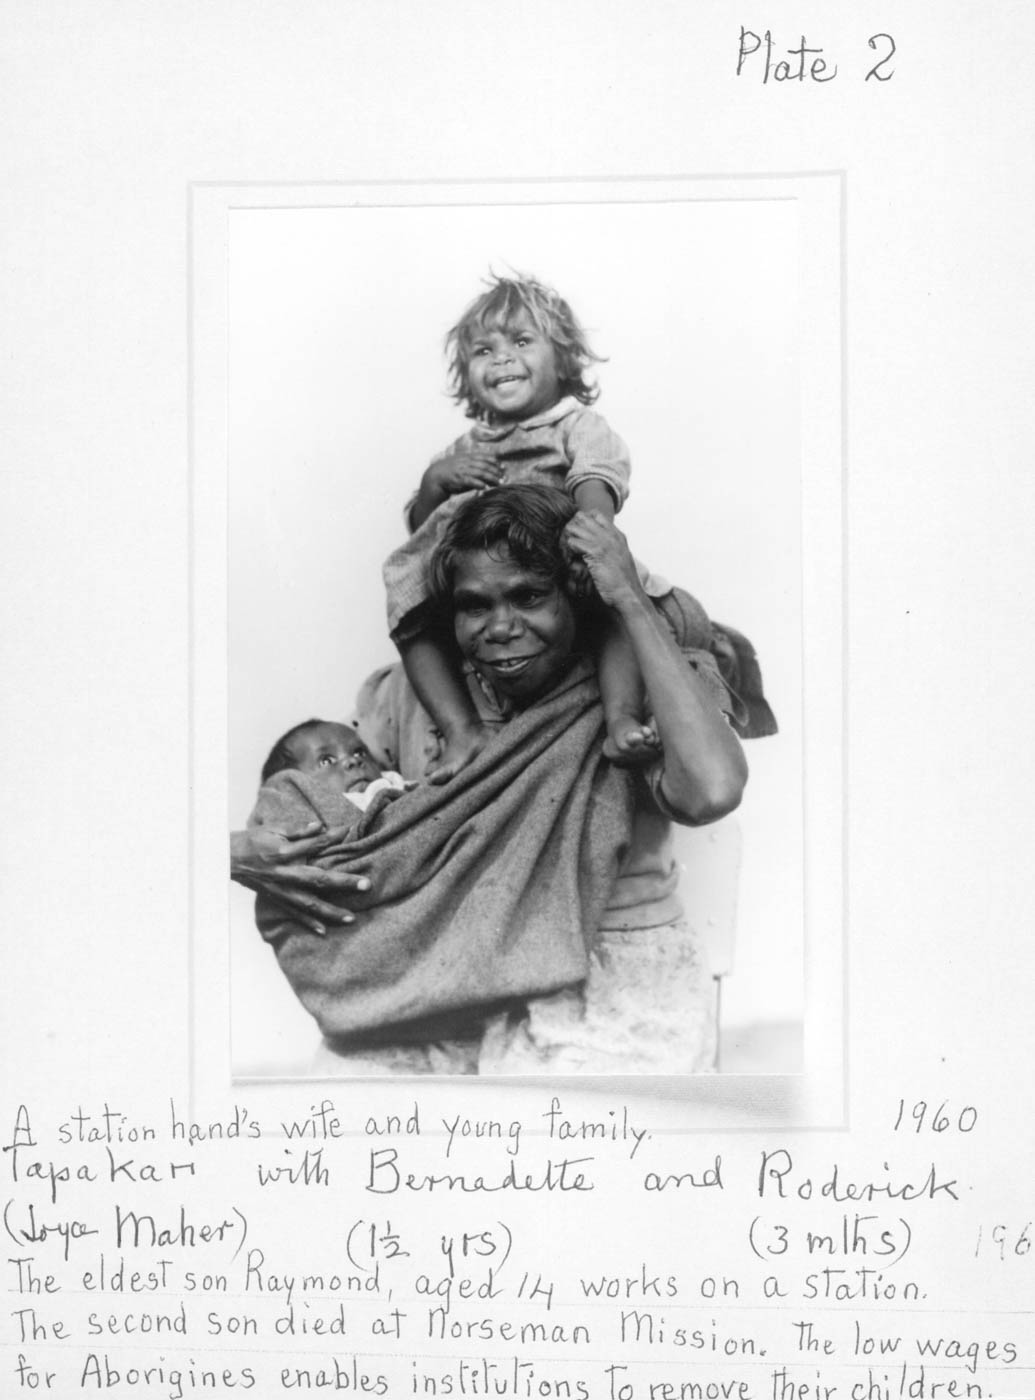 Black and white image of a photo of a woman holding a baby in swaddling and a young girl on her shoulders. Underneath is hand writing describing 'A station hand's wife and young family'. - click to view larger image